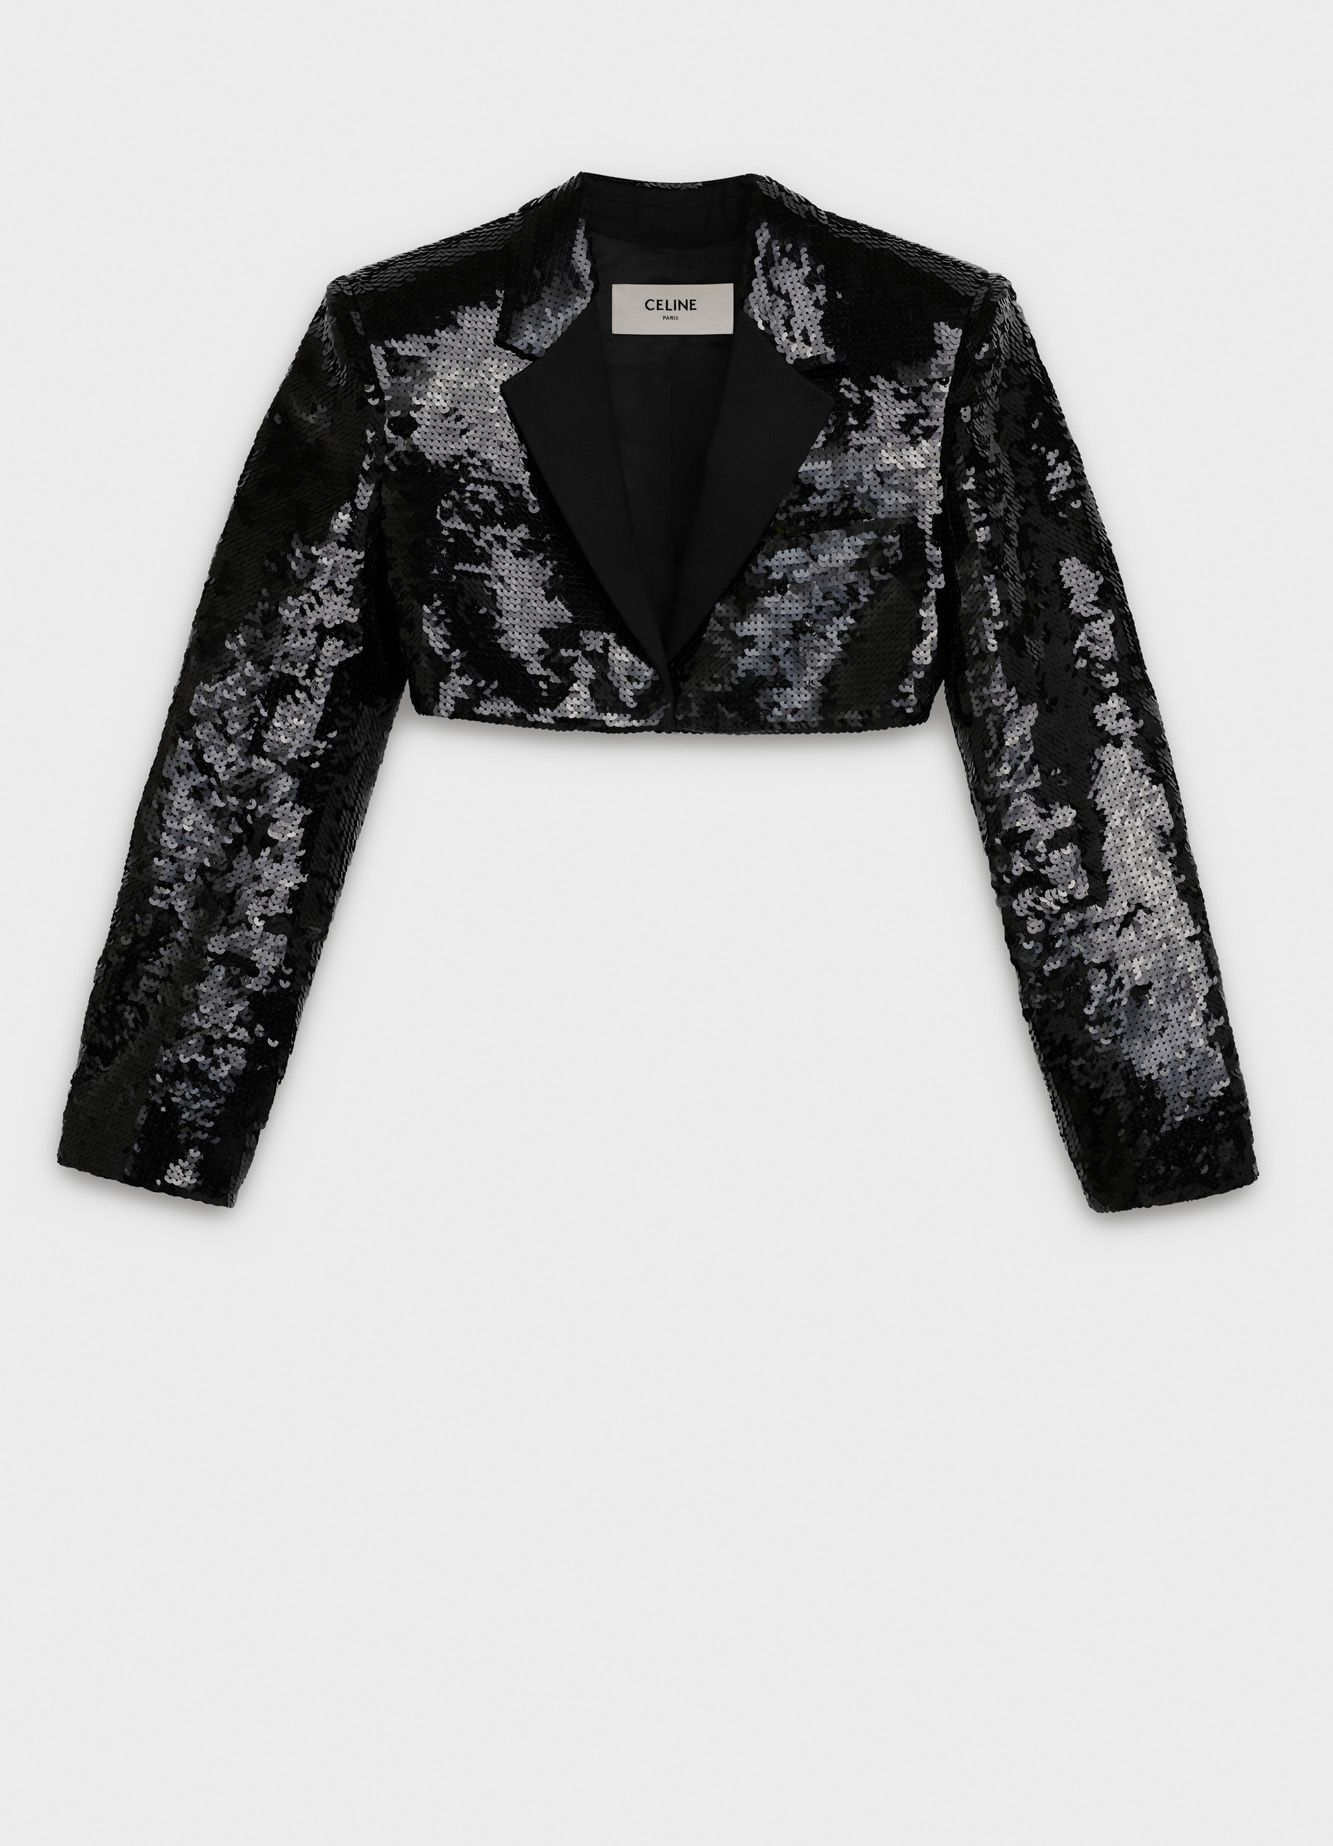 7f8ba47436c74 Short spencer jacket in embroidered wool crepe   CELINE   Style in ...